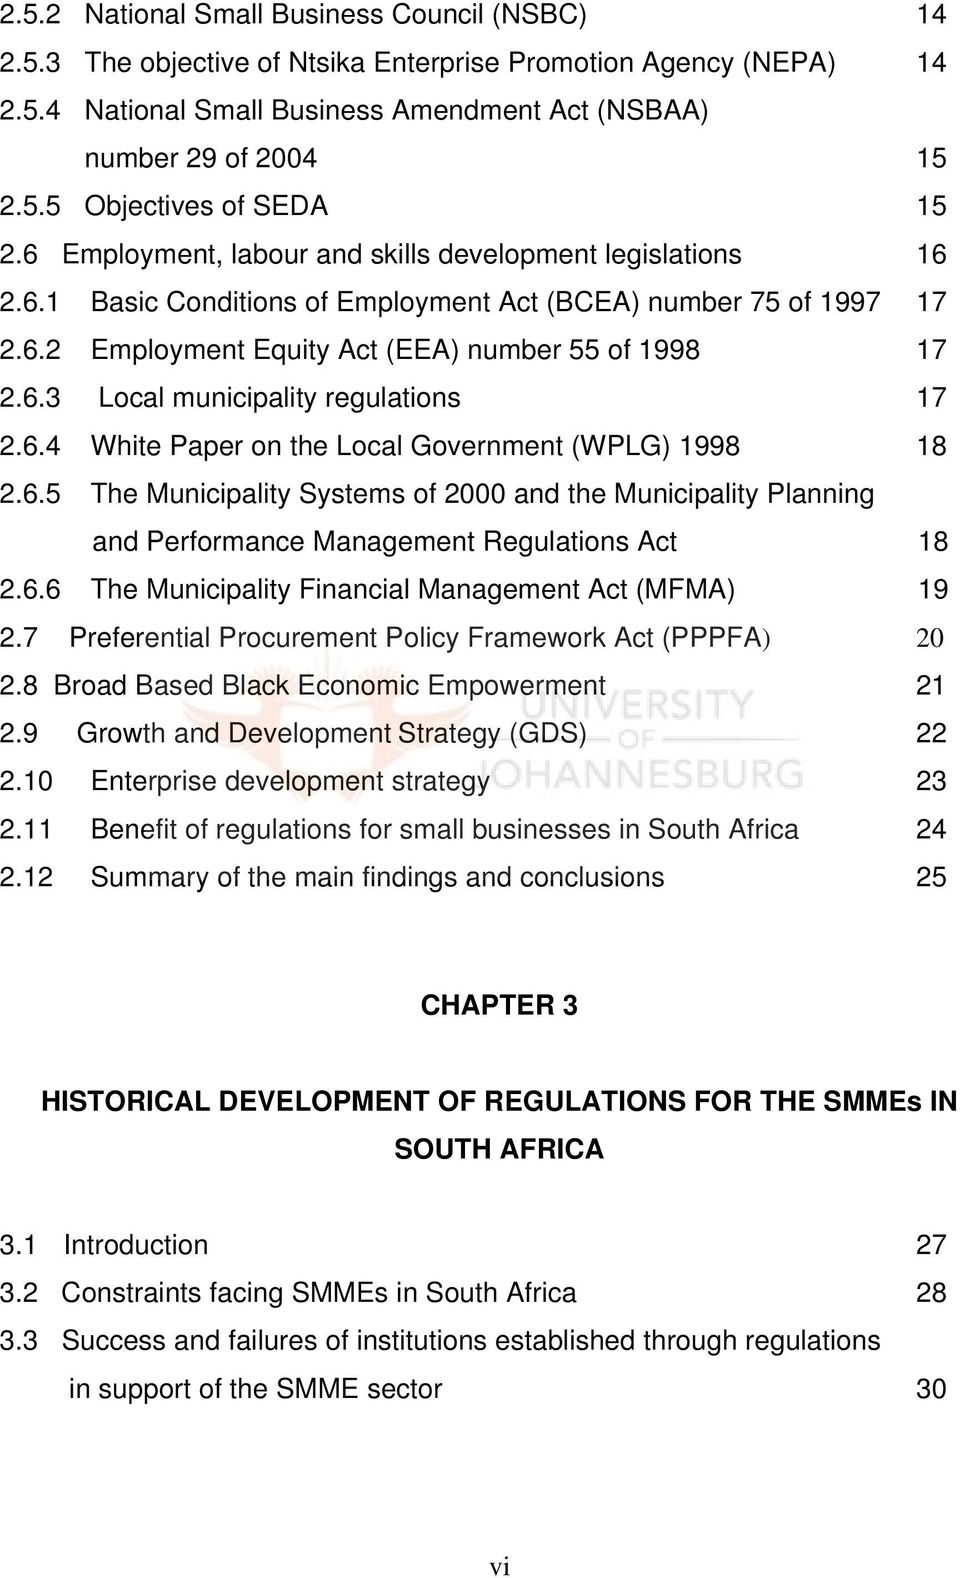 6.4 White Paper on the Local Government (WPLG) 1998 18 2.6.5 The Municipality Systems of 2000 and the Municipality Planning and Performance Management Regulations Act 18 2.6.6 The Municipality Financial Management Act (MFMA) 19 2.